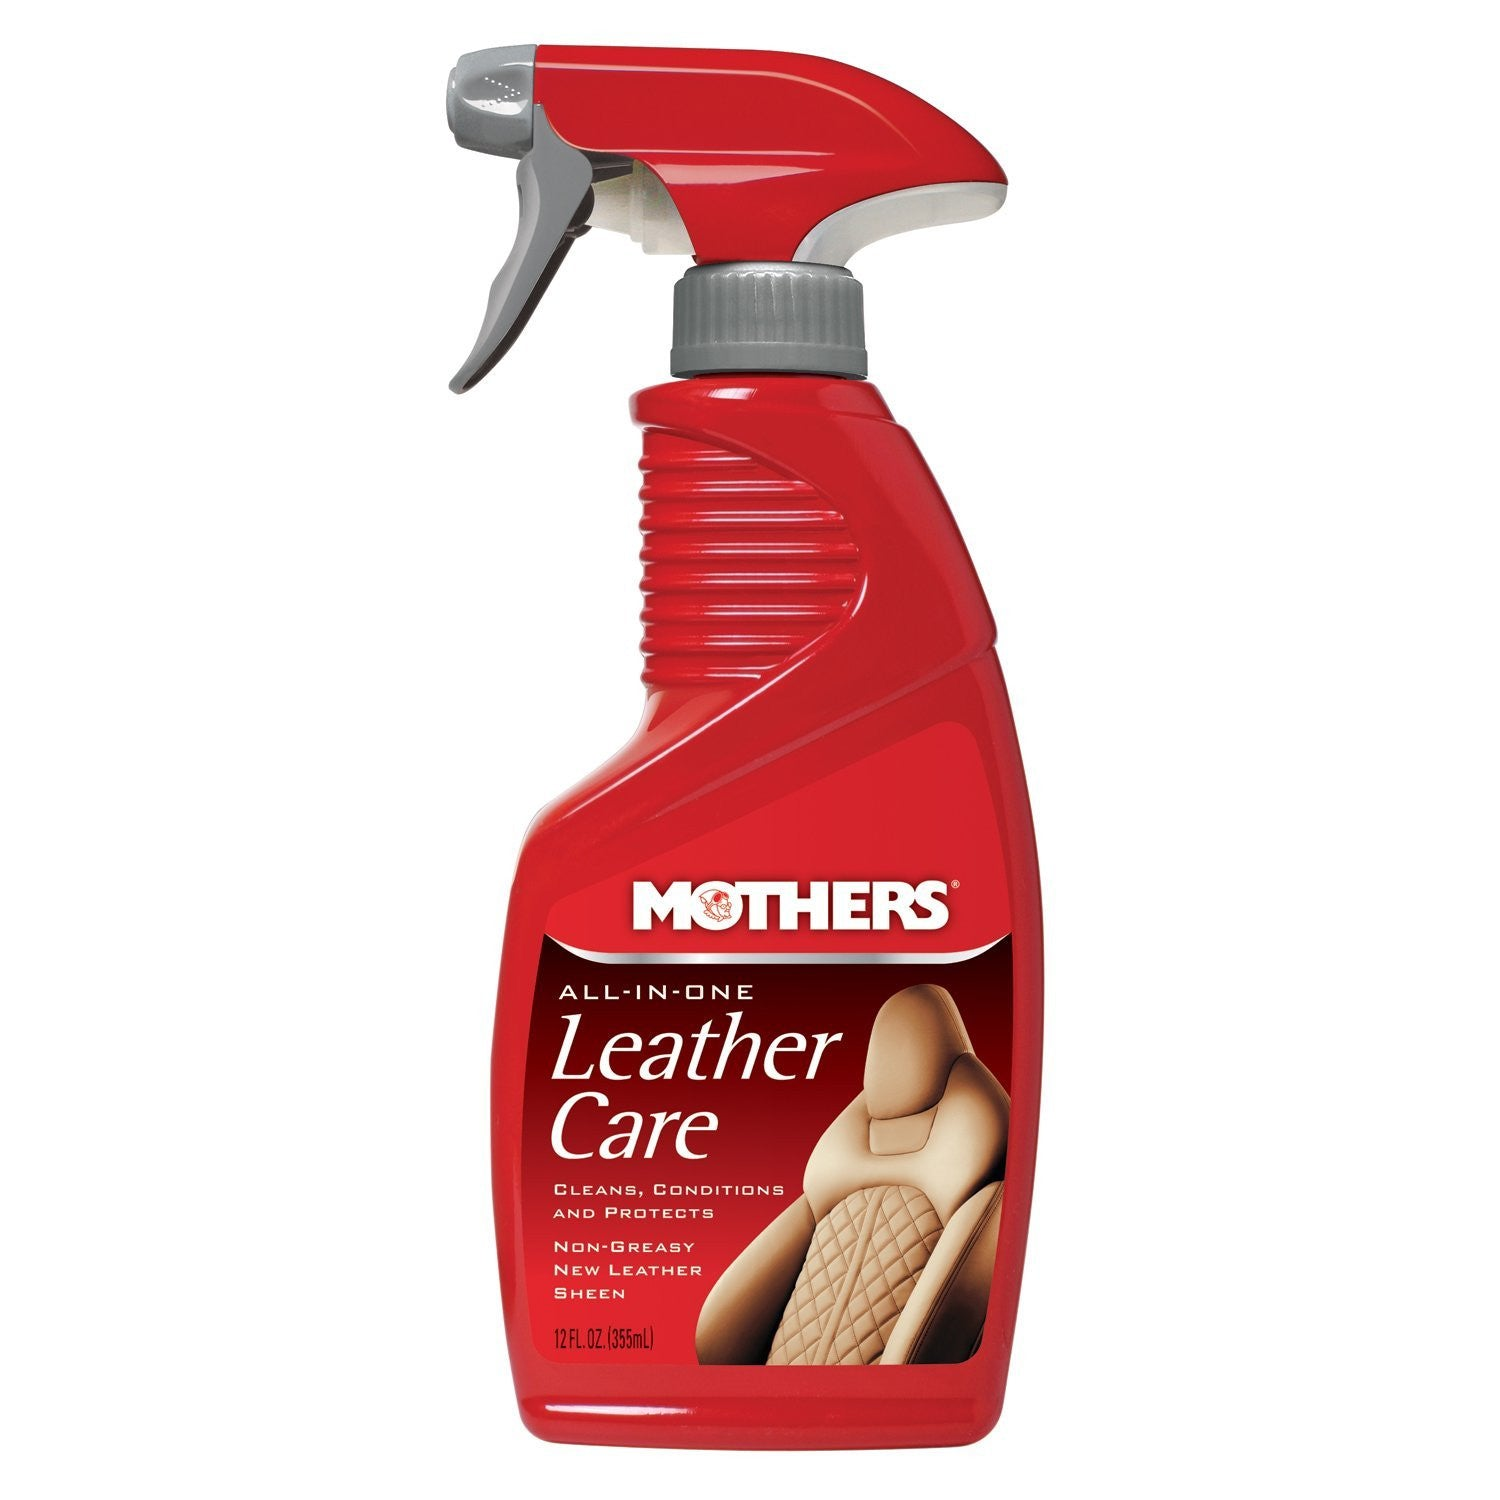 MOTHERS ALL IN ONE Leather Care  12 OZ